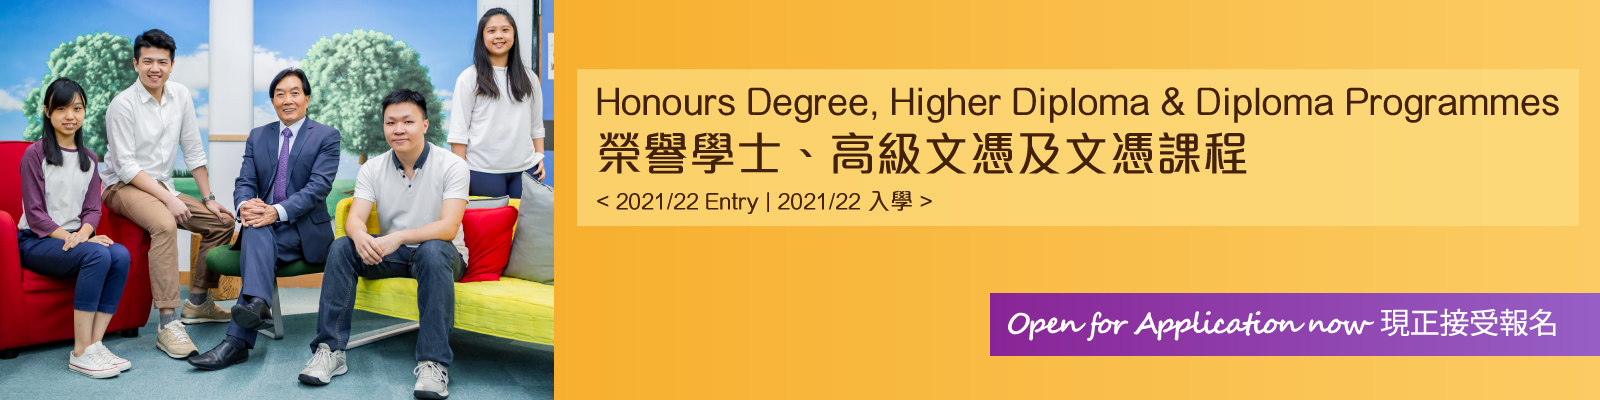 Website-banner-Admission-v4